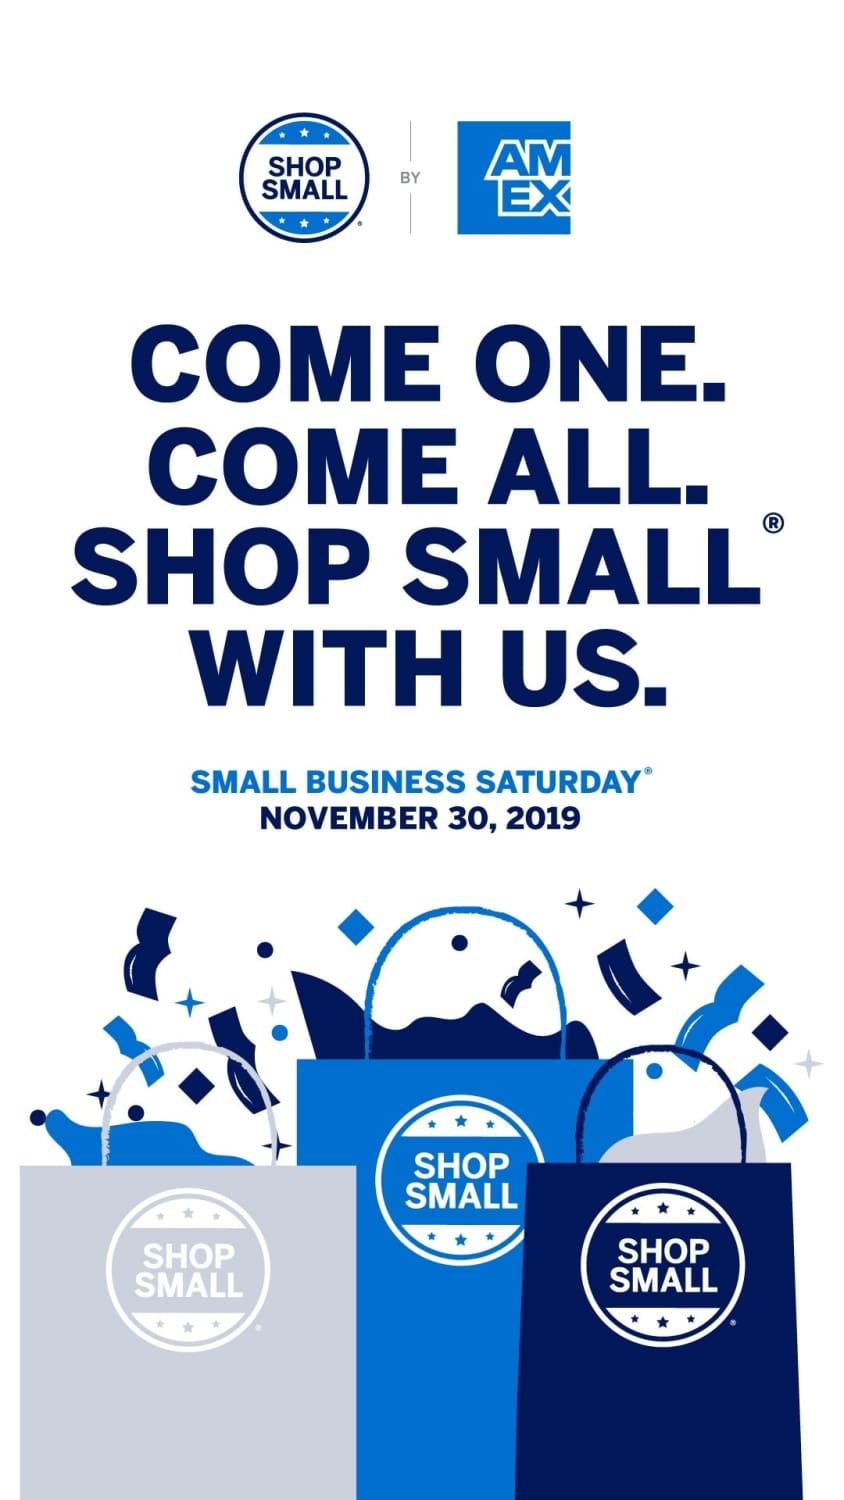 SMALL BUSINESS WEEKEND